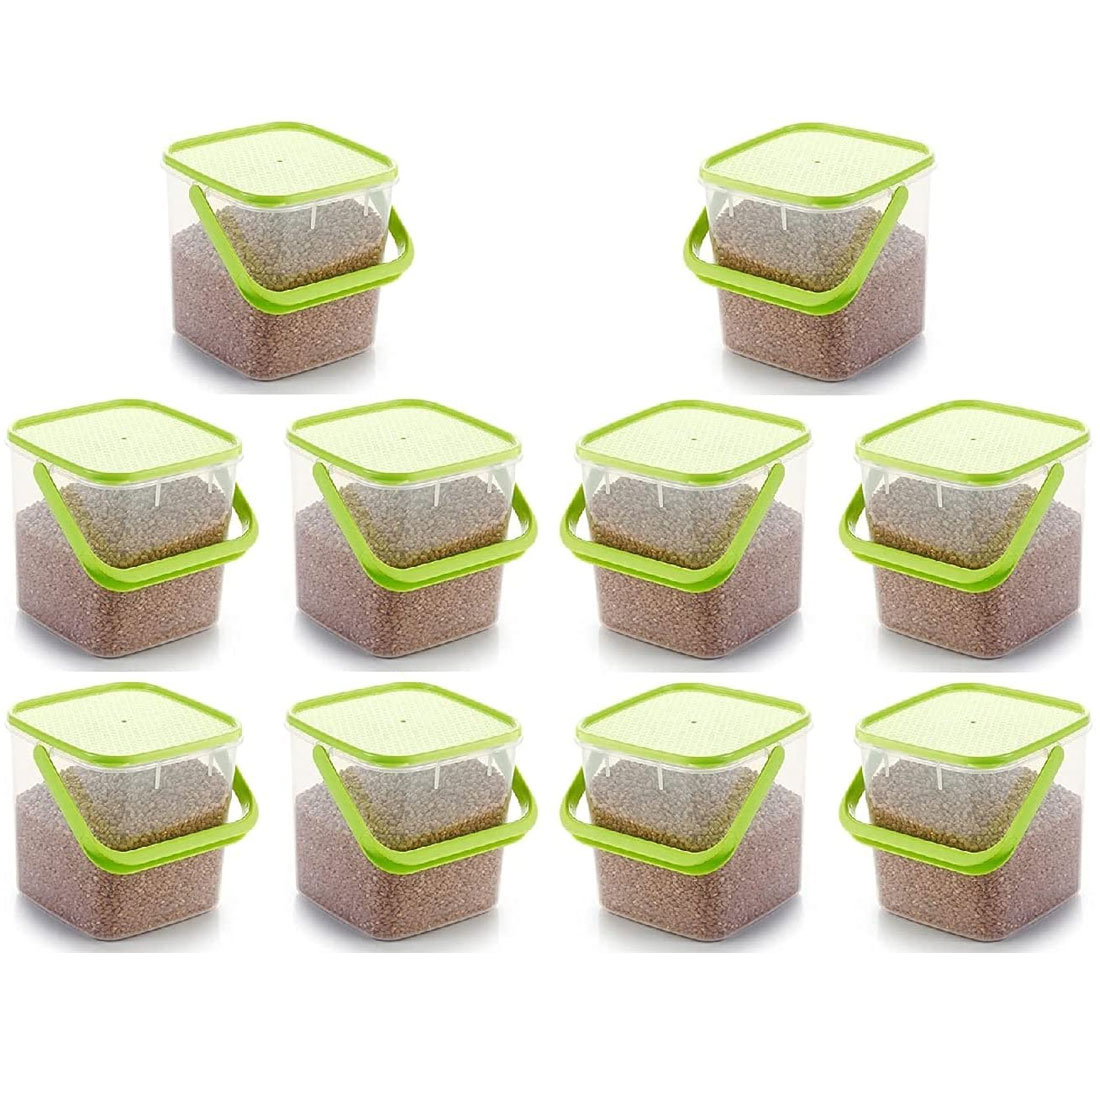 SOLOMON PREMIUM QUALITY 3KG SQUARE CONTAINER WITH GREEN CAP PACK OF 10